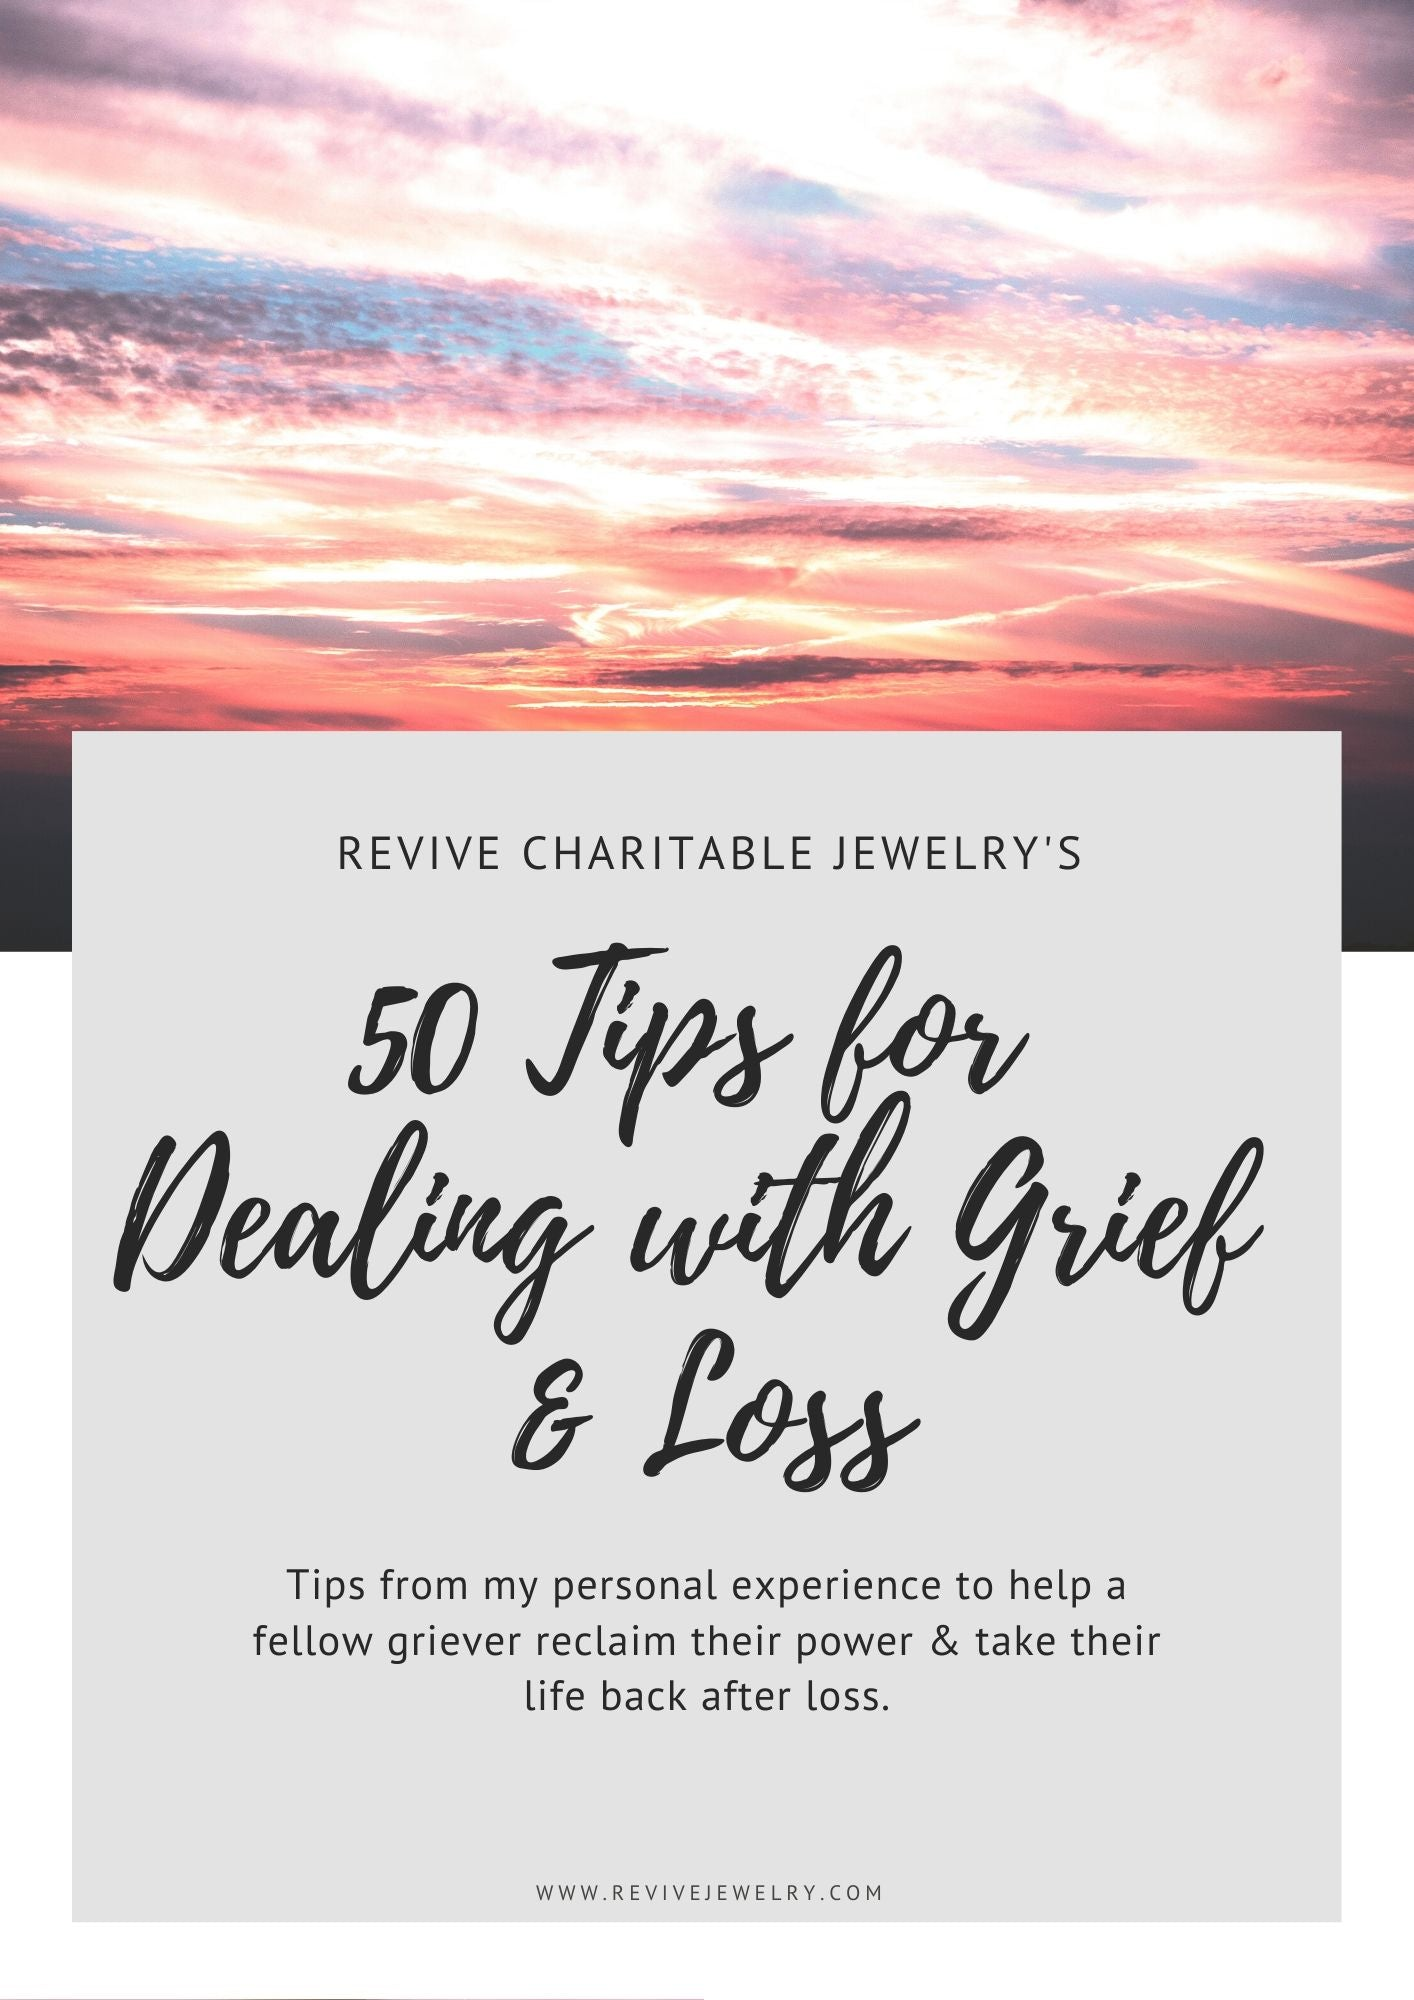 50 tips for dealing with grief and loss